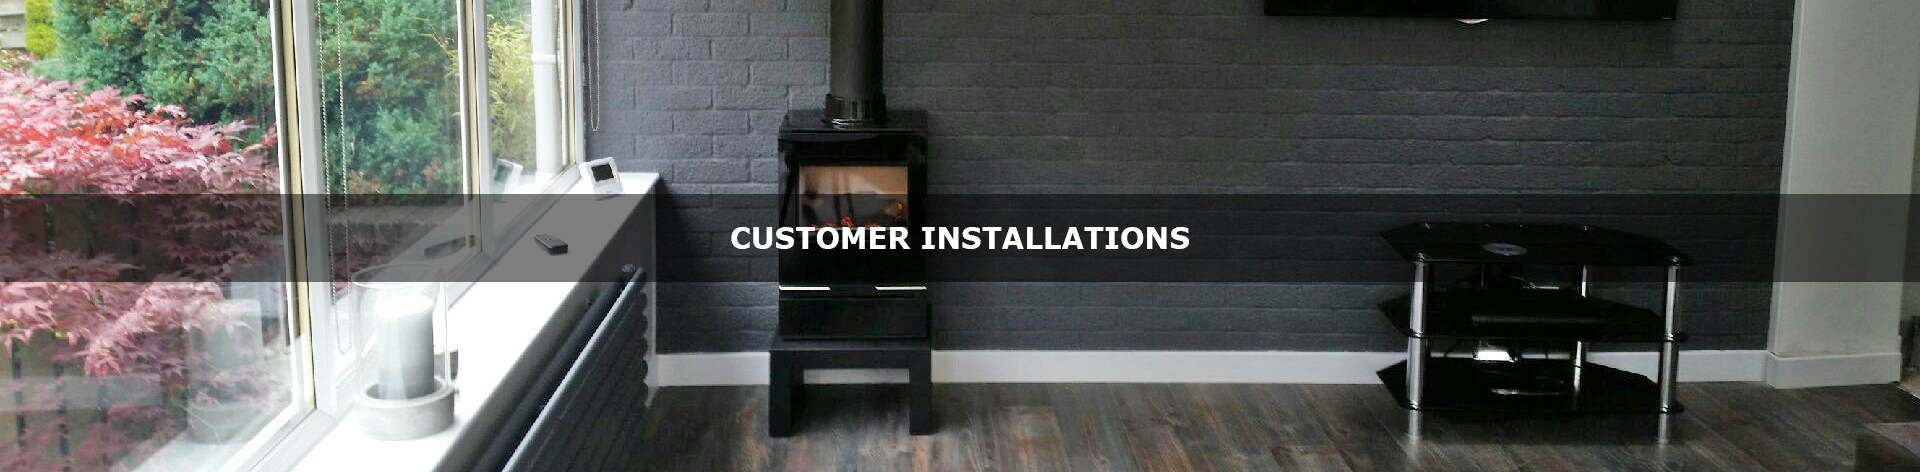 Stove World Glasgow Scotland Customer Installations.